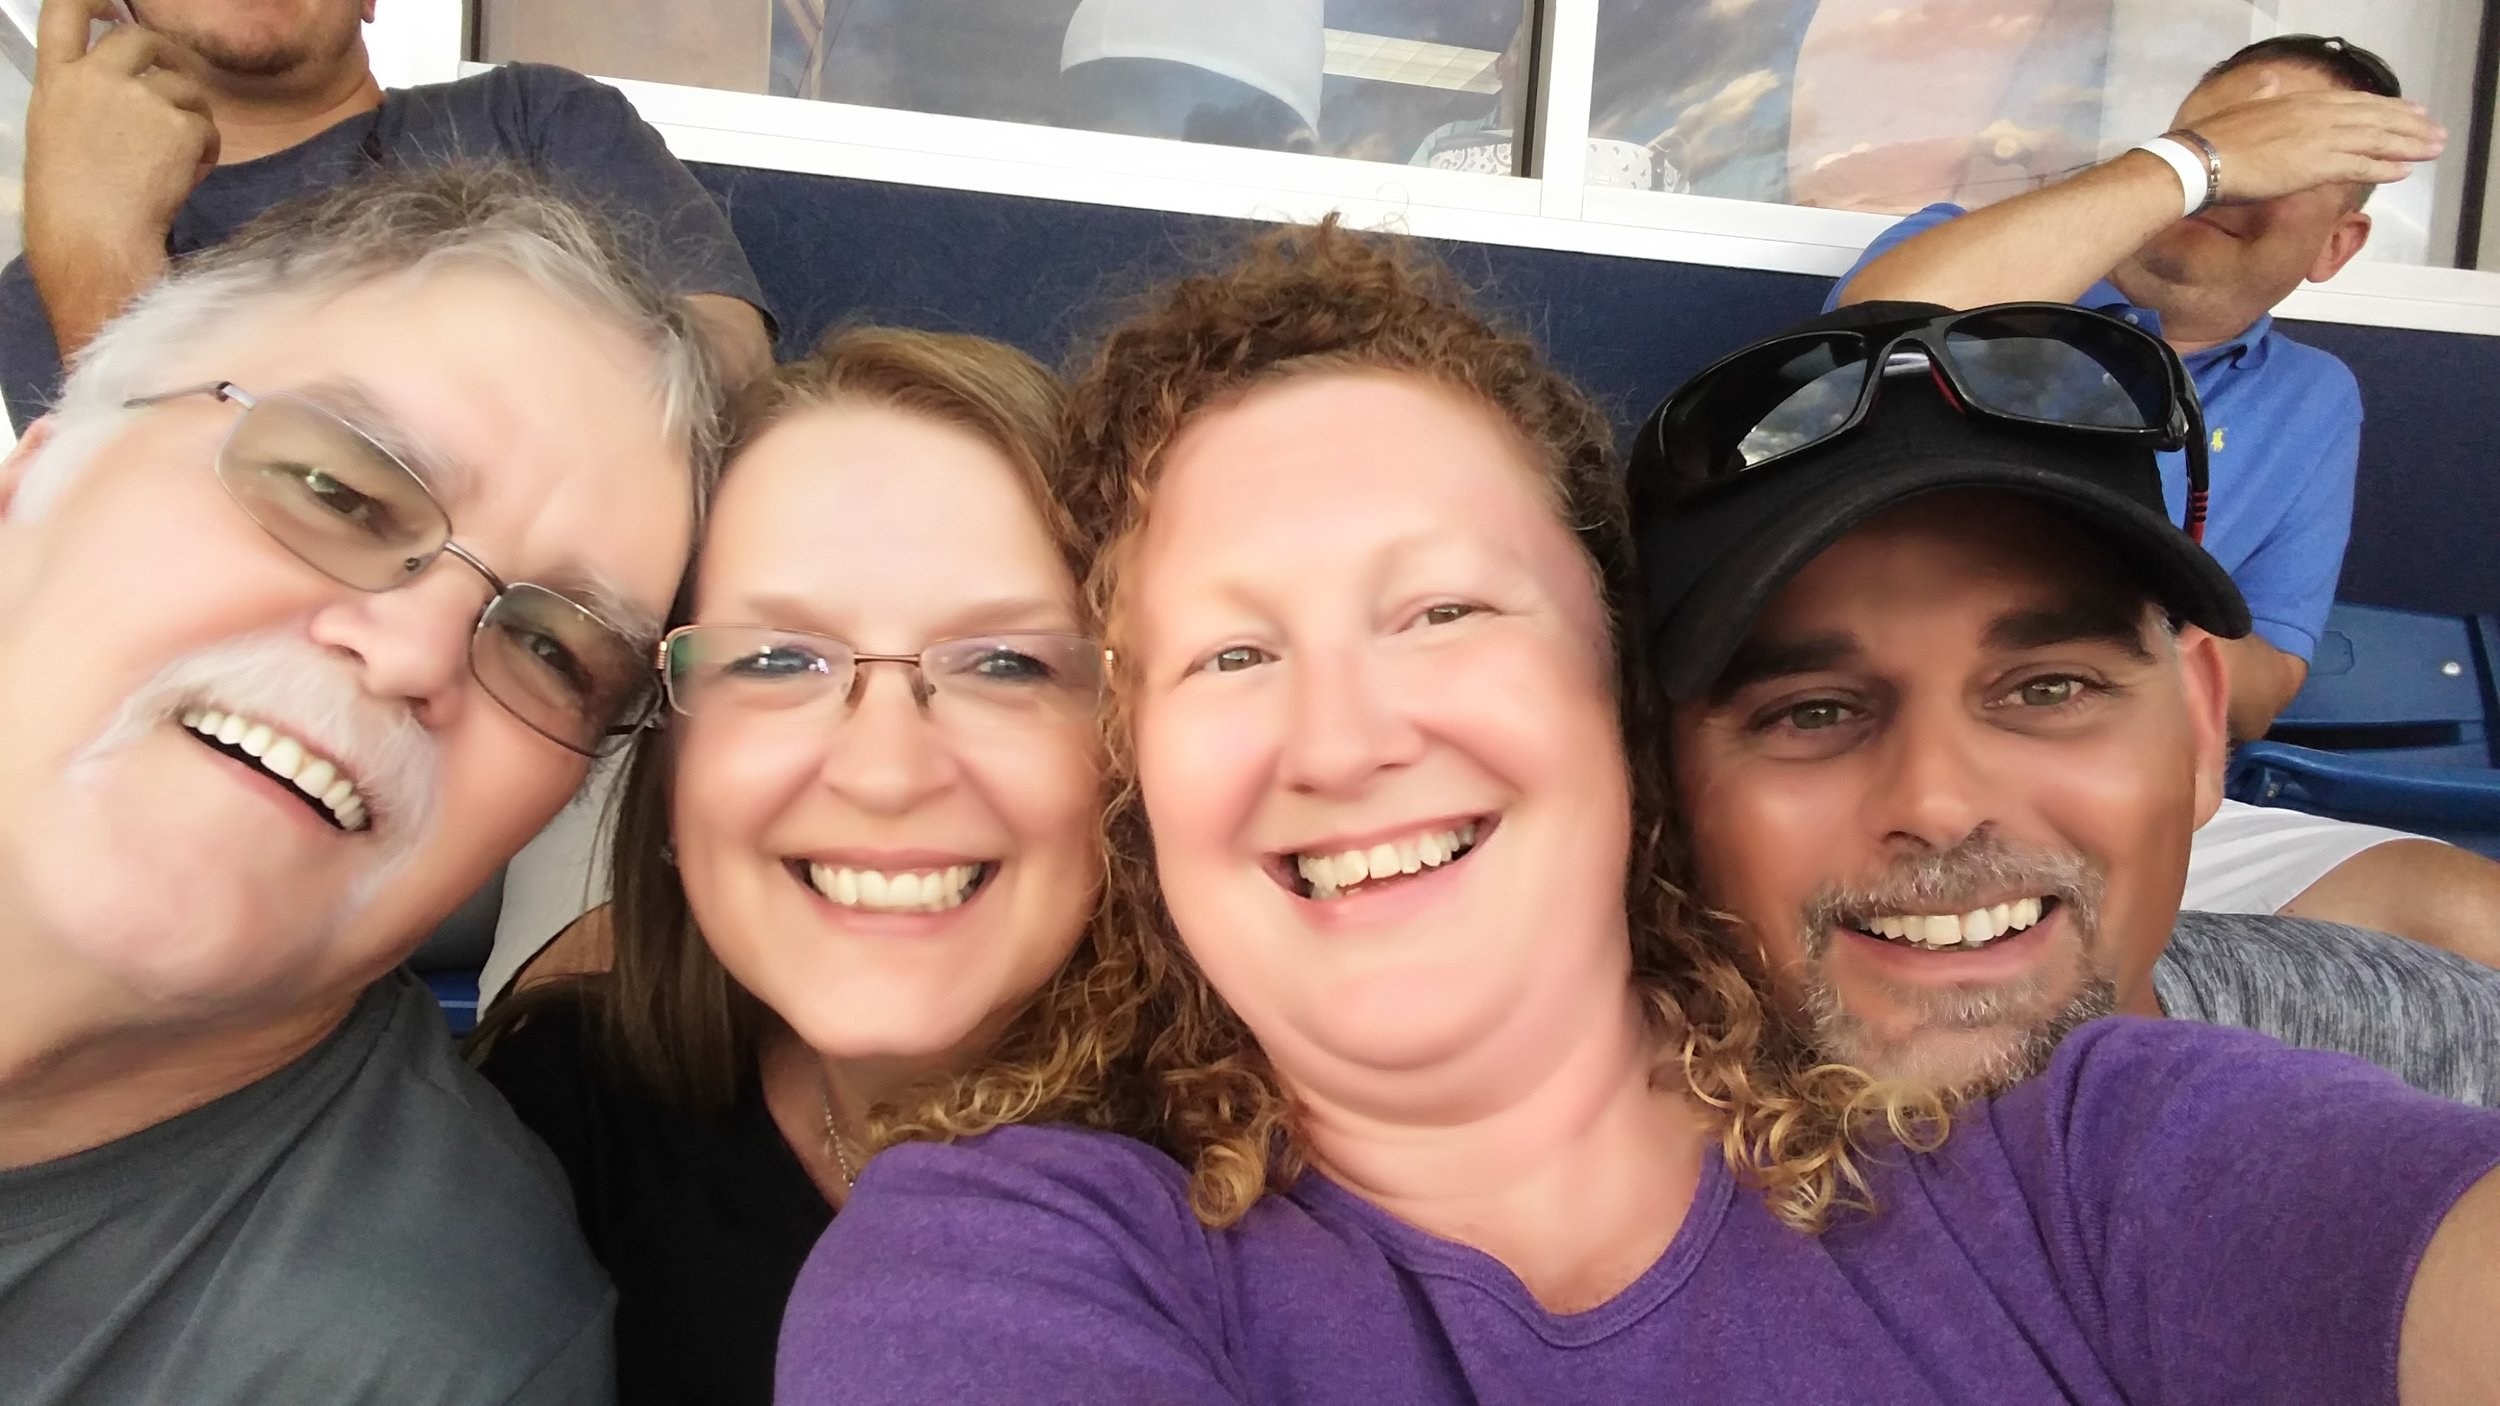 companion home care of roanoke va team at salem red sox baseball game.jpg